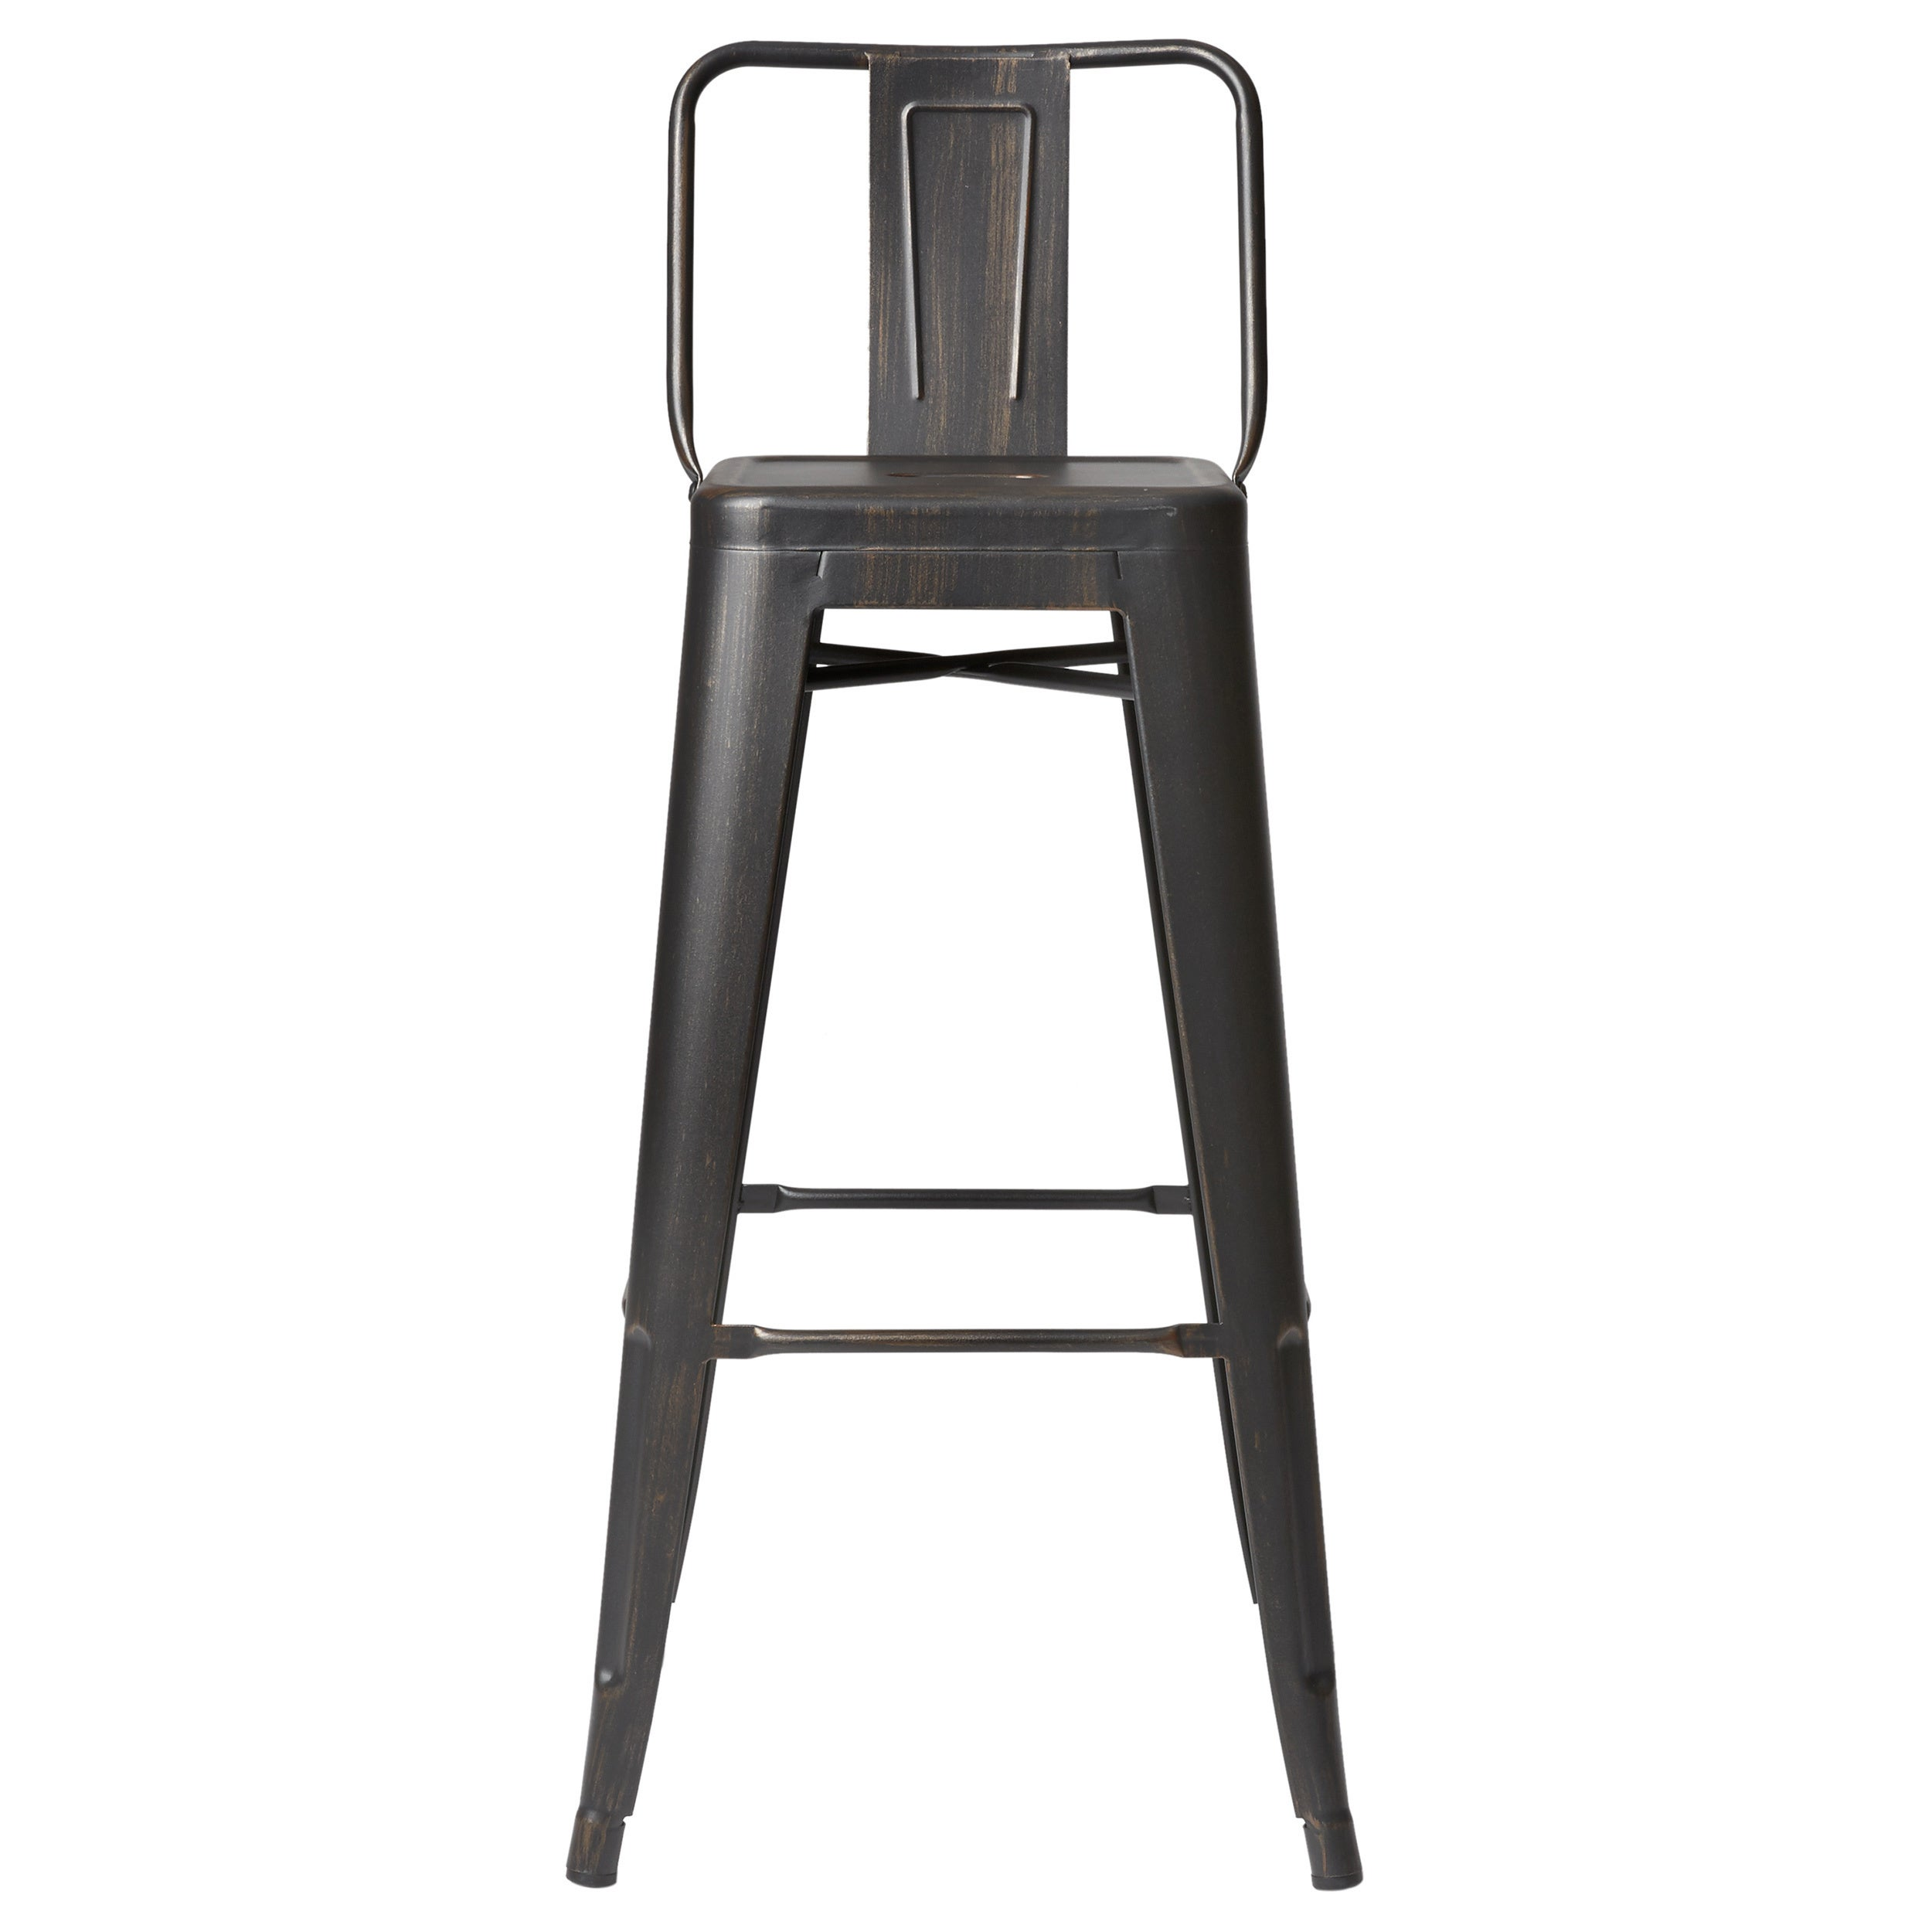 Fabulous Buy Modern Contemporary Counter Bar Stools Online At Gmtry Best Dining Table And Chair Ideas Images Gmtryco